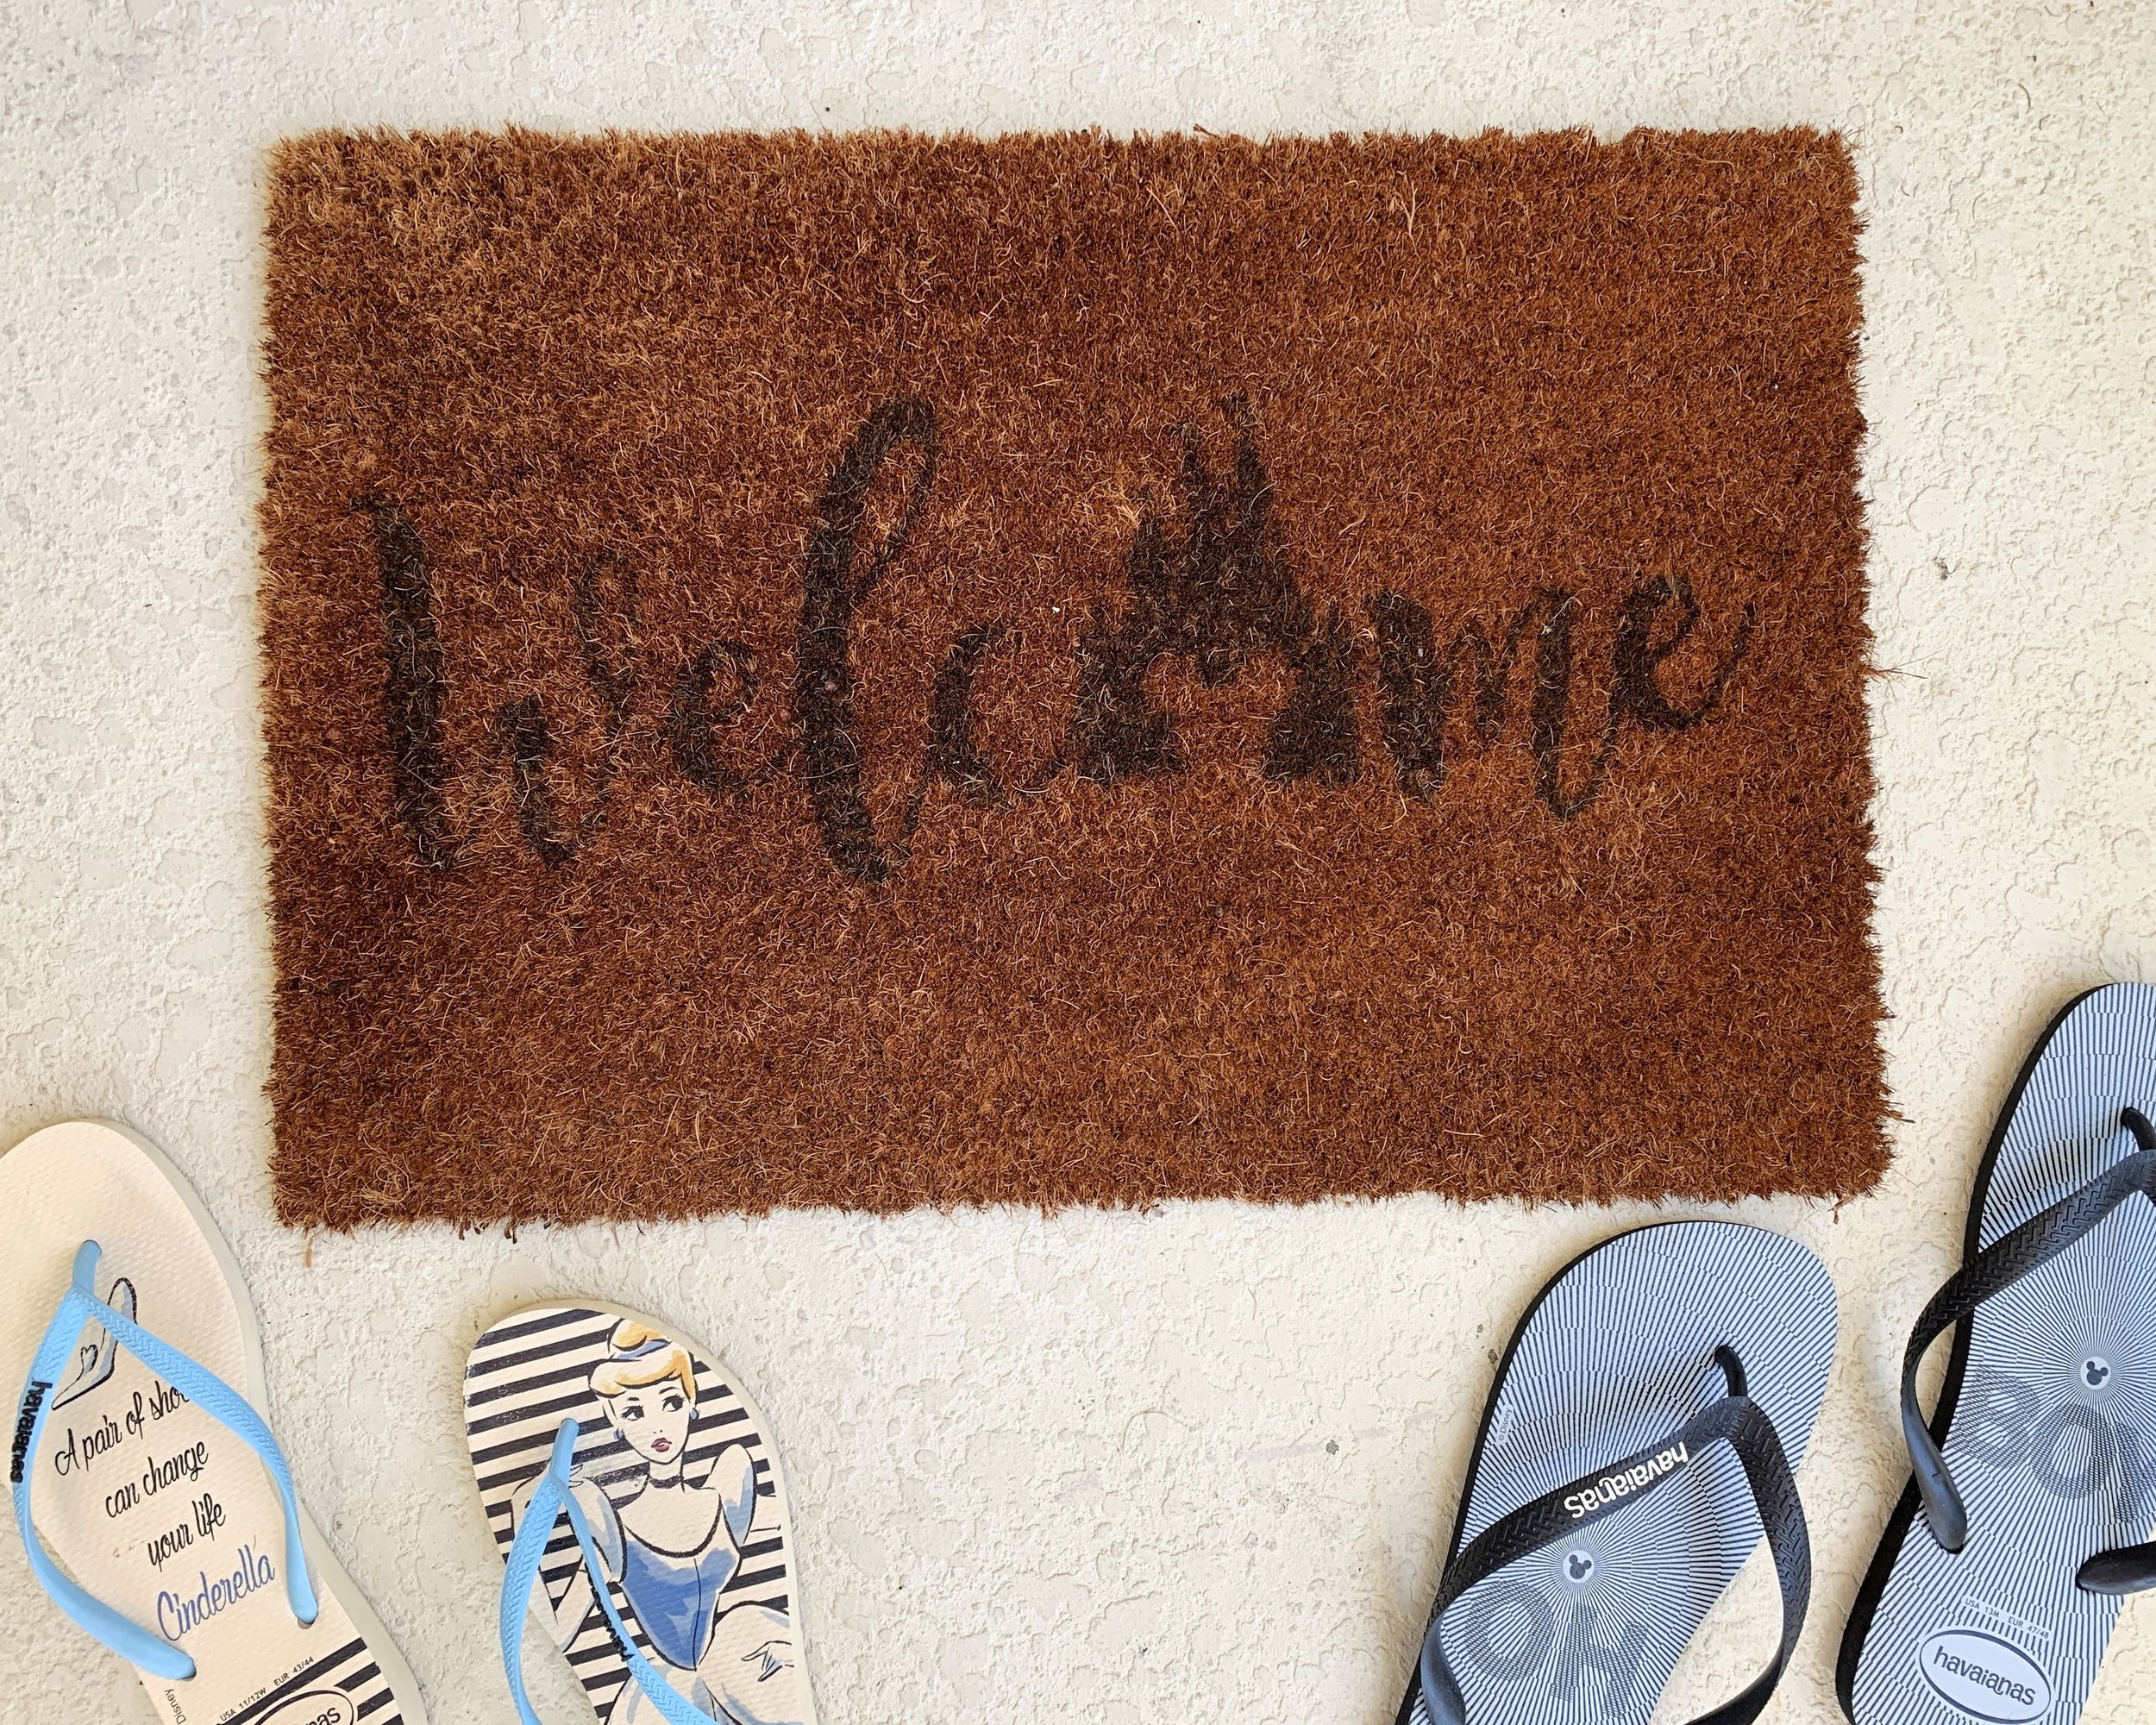 Check out the perfect door mat our MD realtor Signe gifted us!